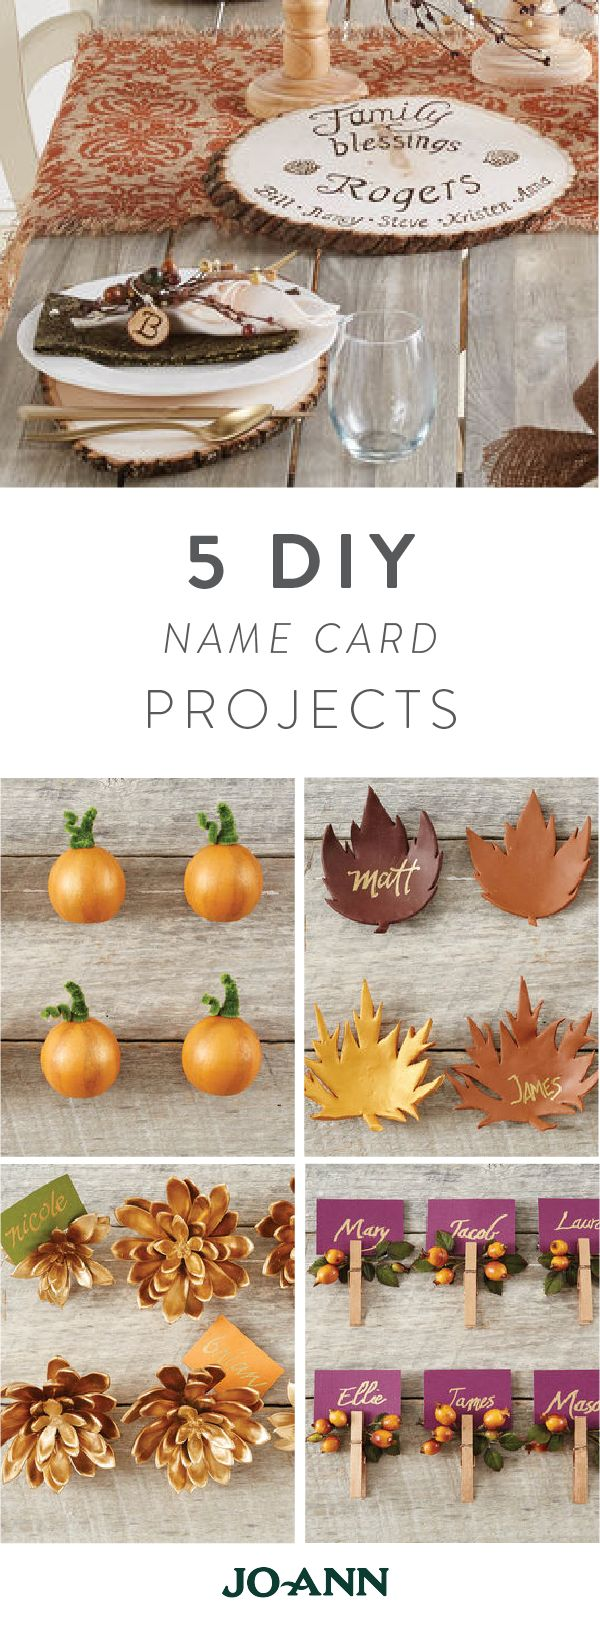 334 best Fall Projects with Jo-Ann images on Pinterest | Fall ...